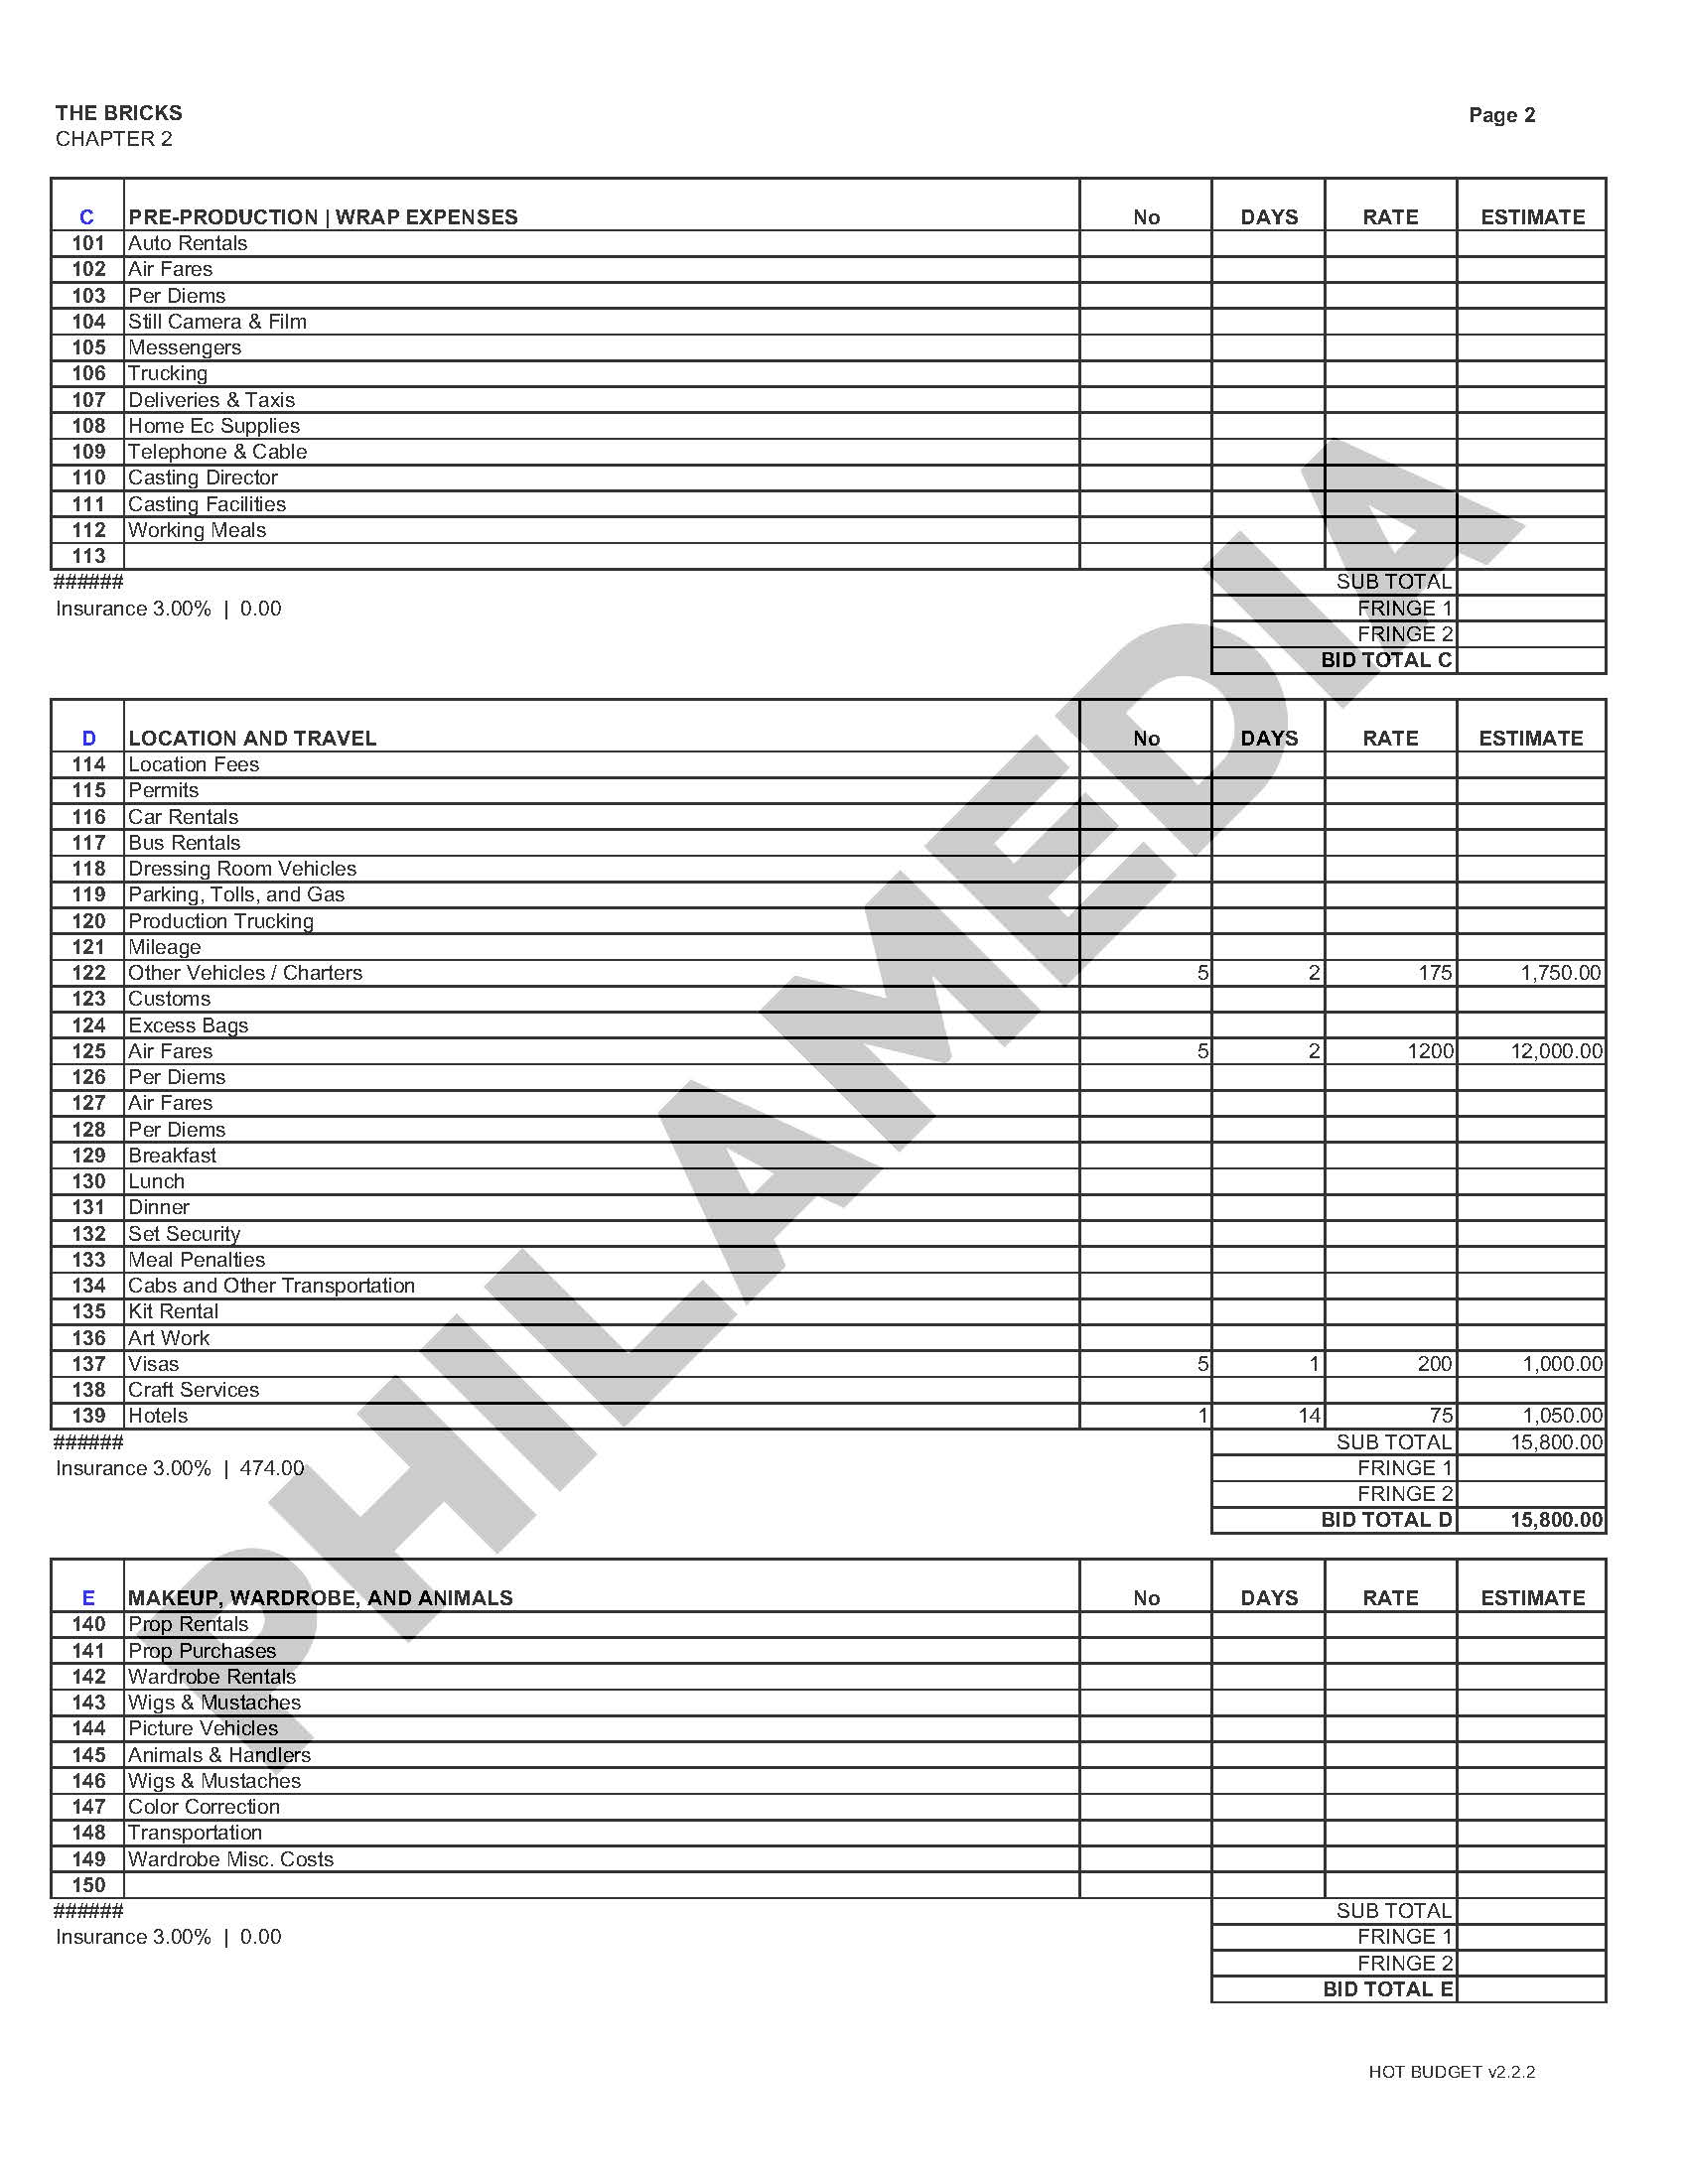 The Bricks_Chapter 2 Budget Final_Page_4.jpg